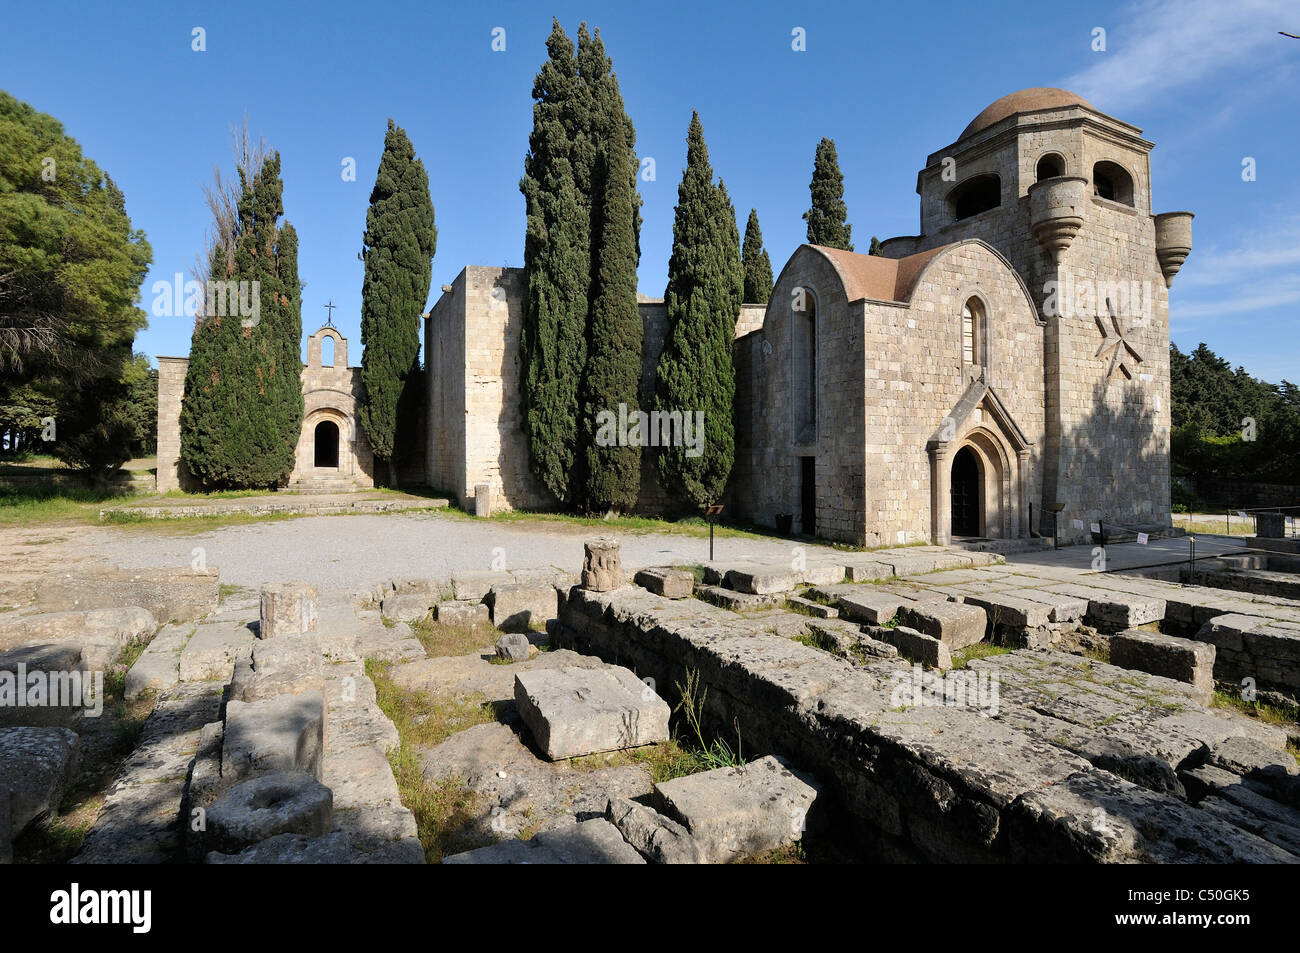 Rhodes. Greece. Monastery of the Virgin aka Monastery Panagia Filerimos, and remains of the ancient Temple of Athena - Stock Image